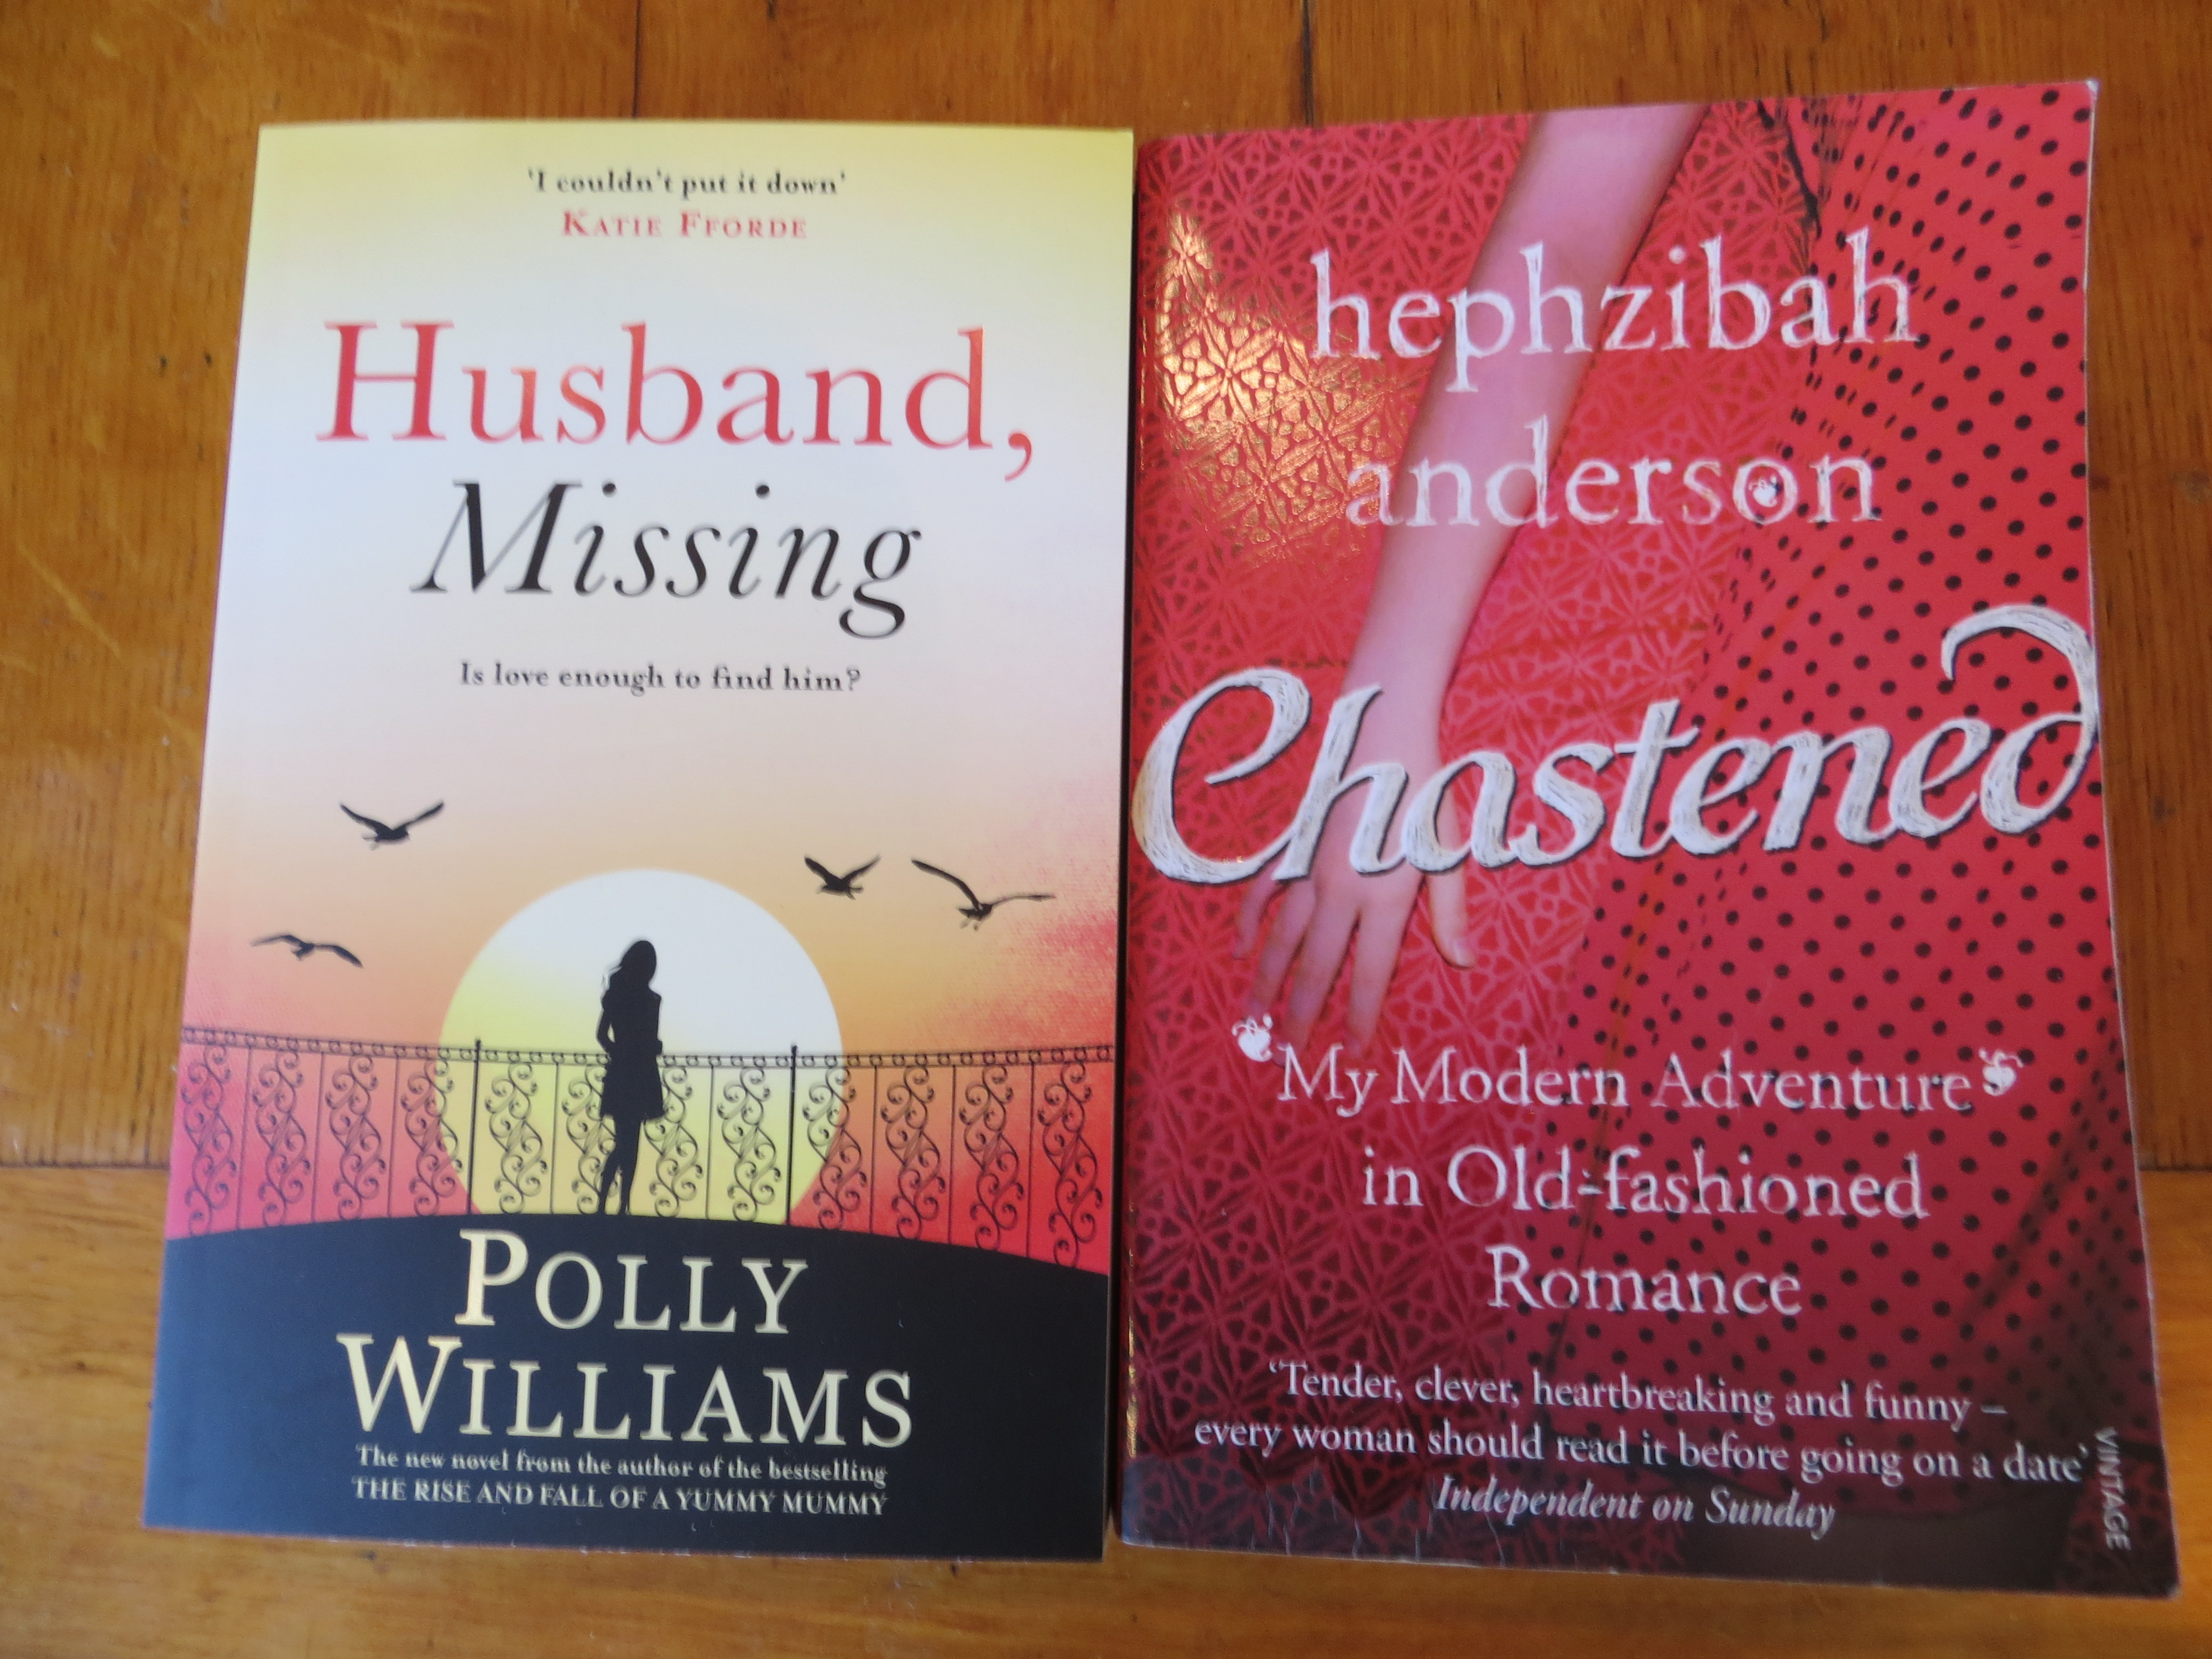 Chastened by Hephzibah Anderson and Husband, Missing by Polly Williams